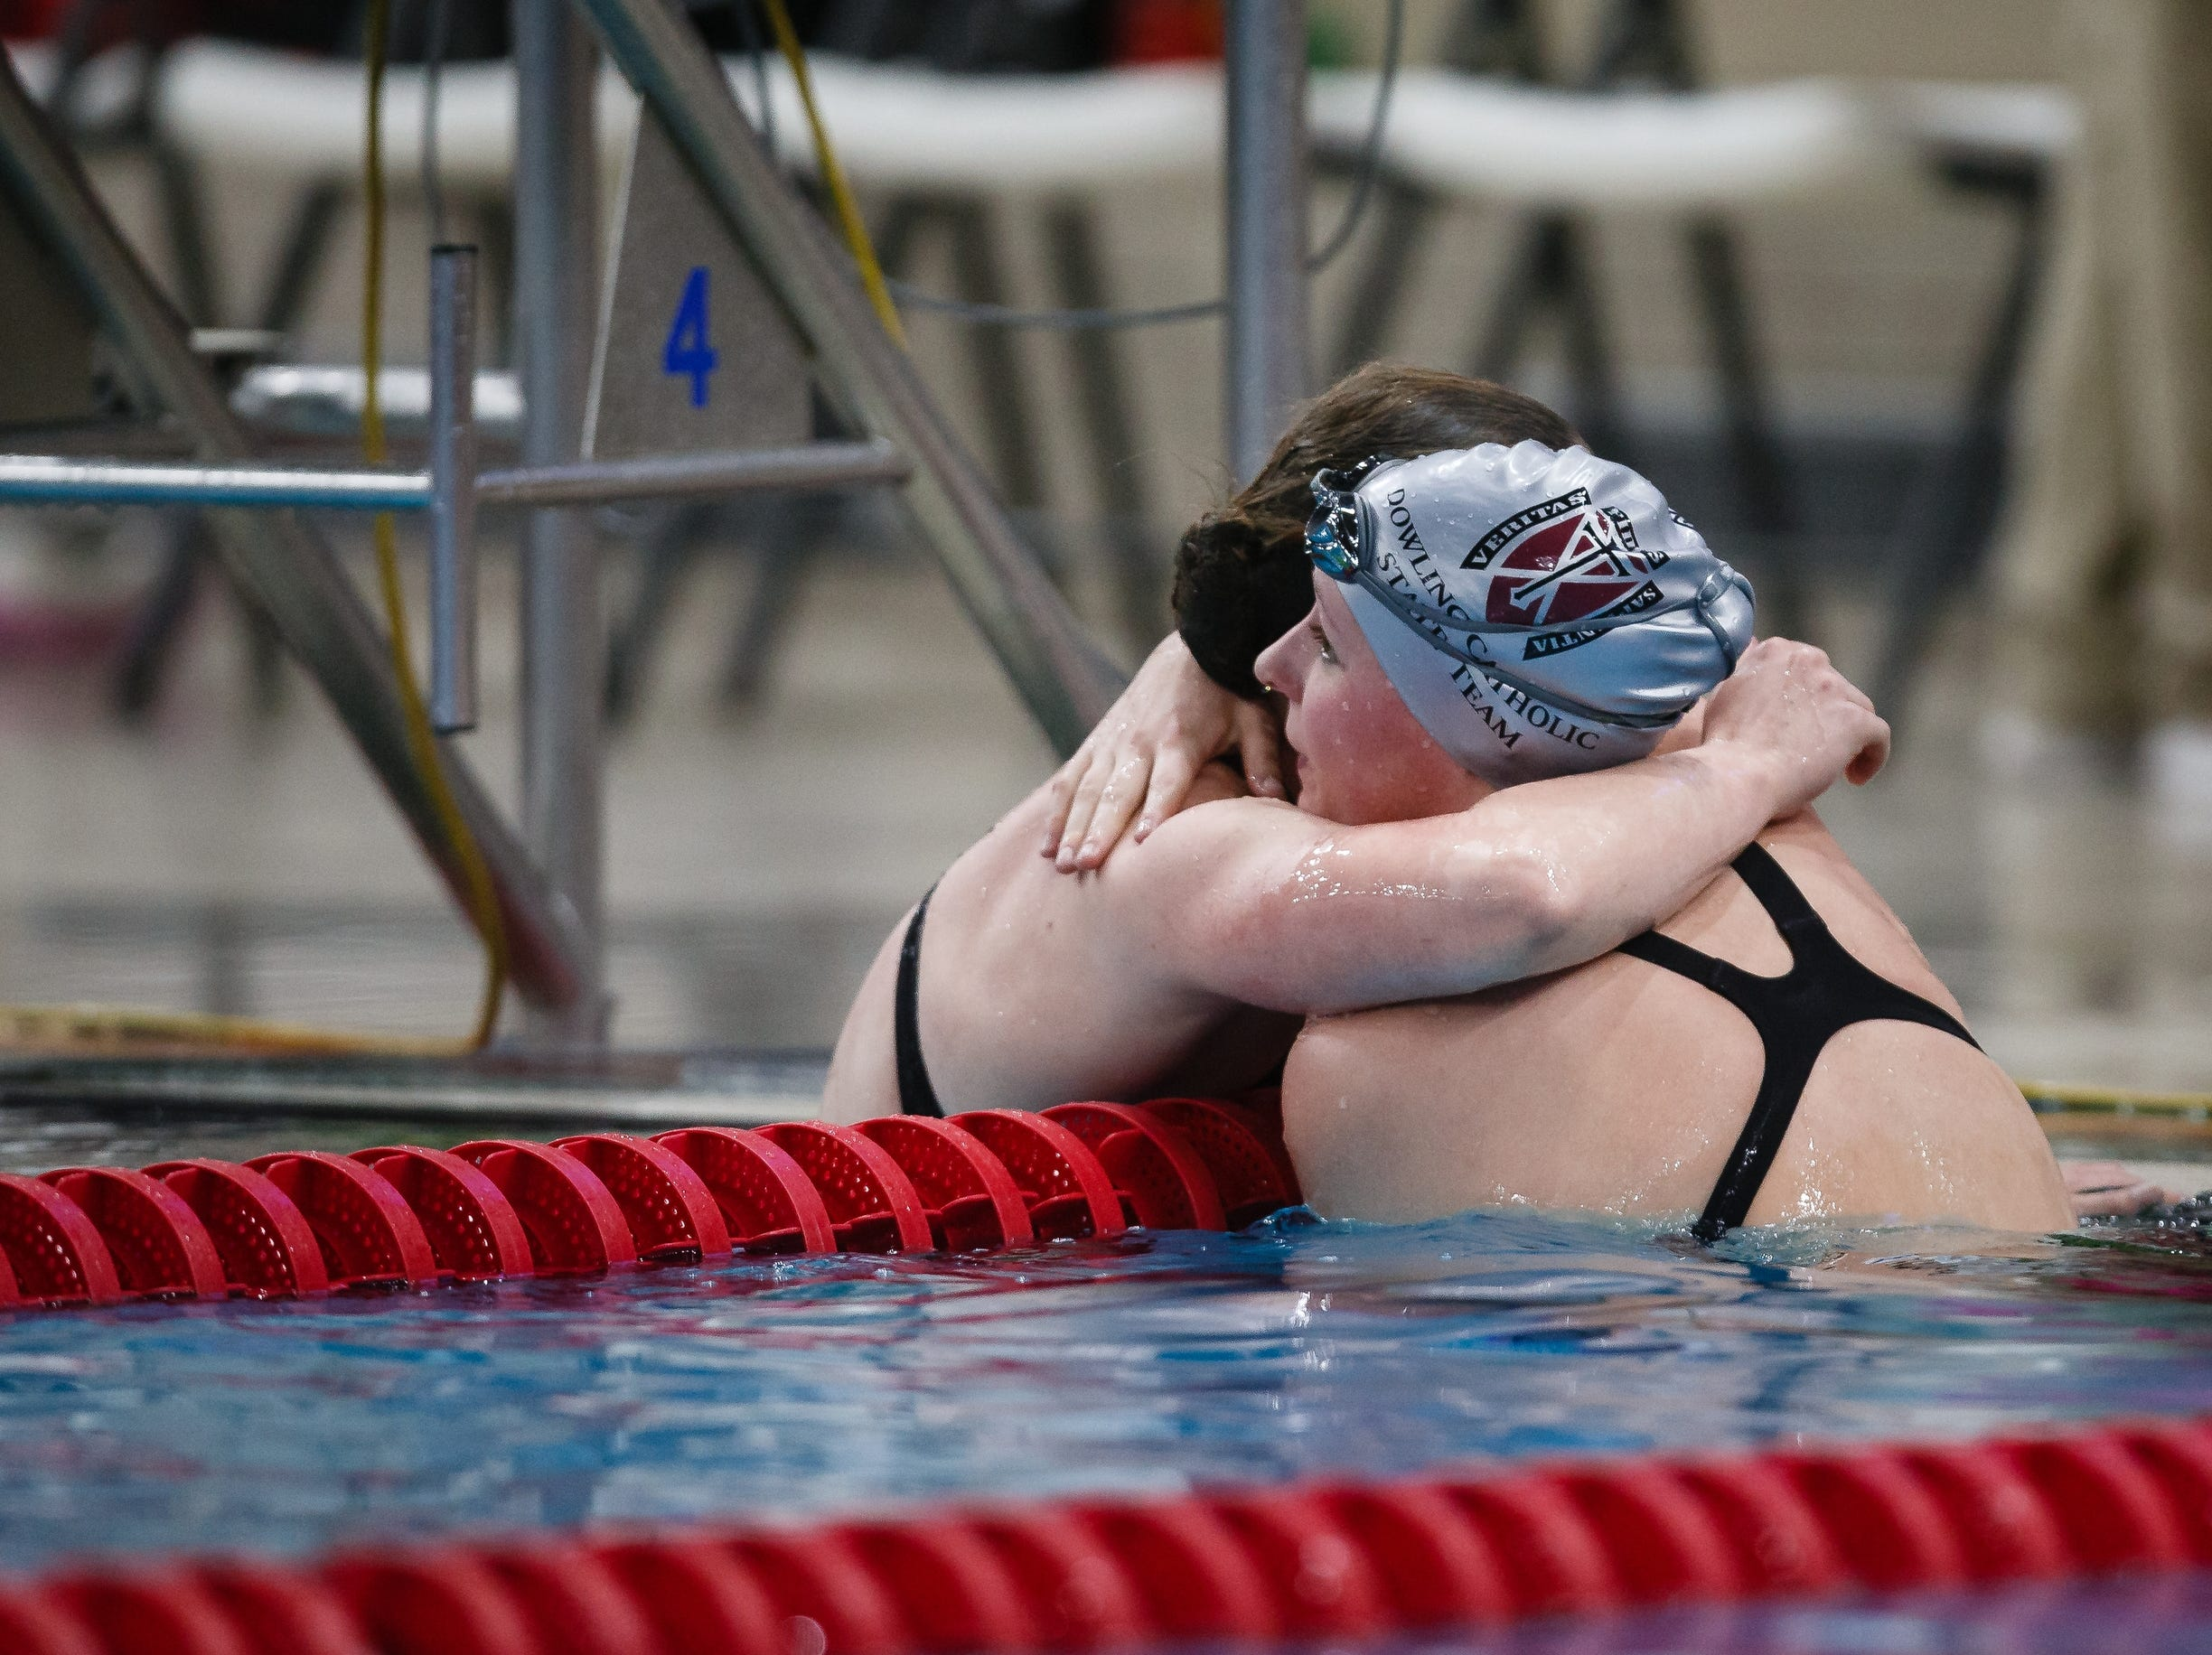 Dowling Catholic's Berit Quass, left, and teammate Claire Culver hug after swimming in the 500 yard freestyle at the Iowa girls state swimming meet on Saturday, Nov. 3, 2018, in Marshalltown.